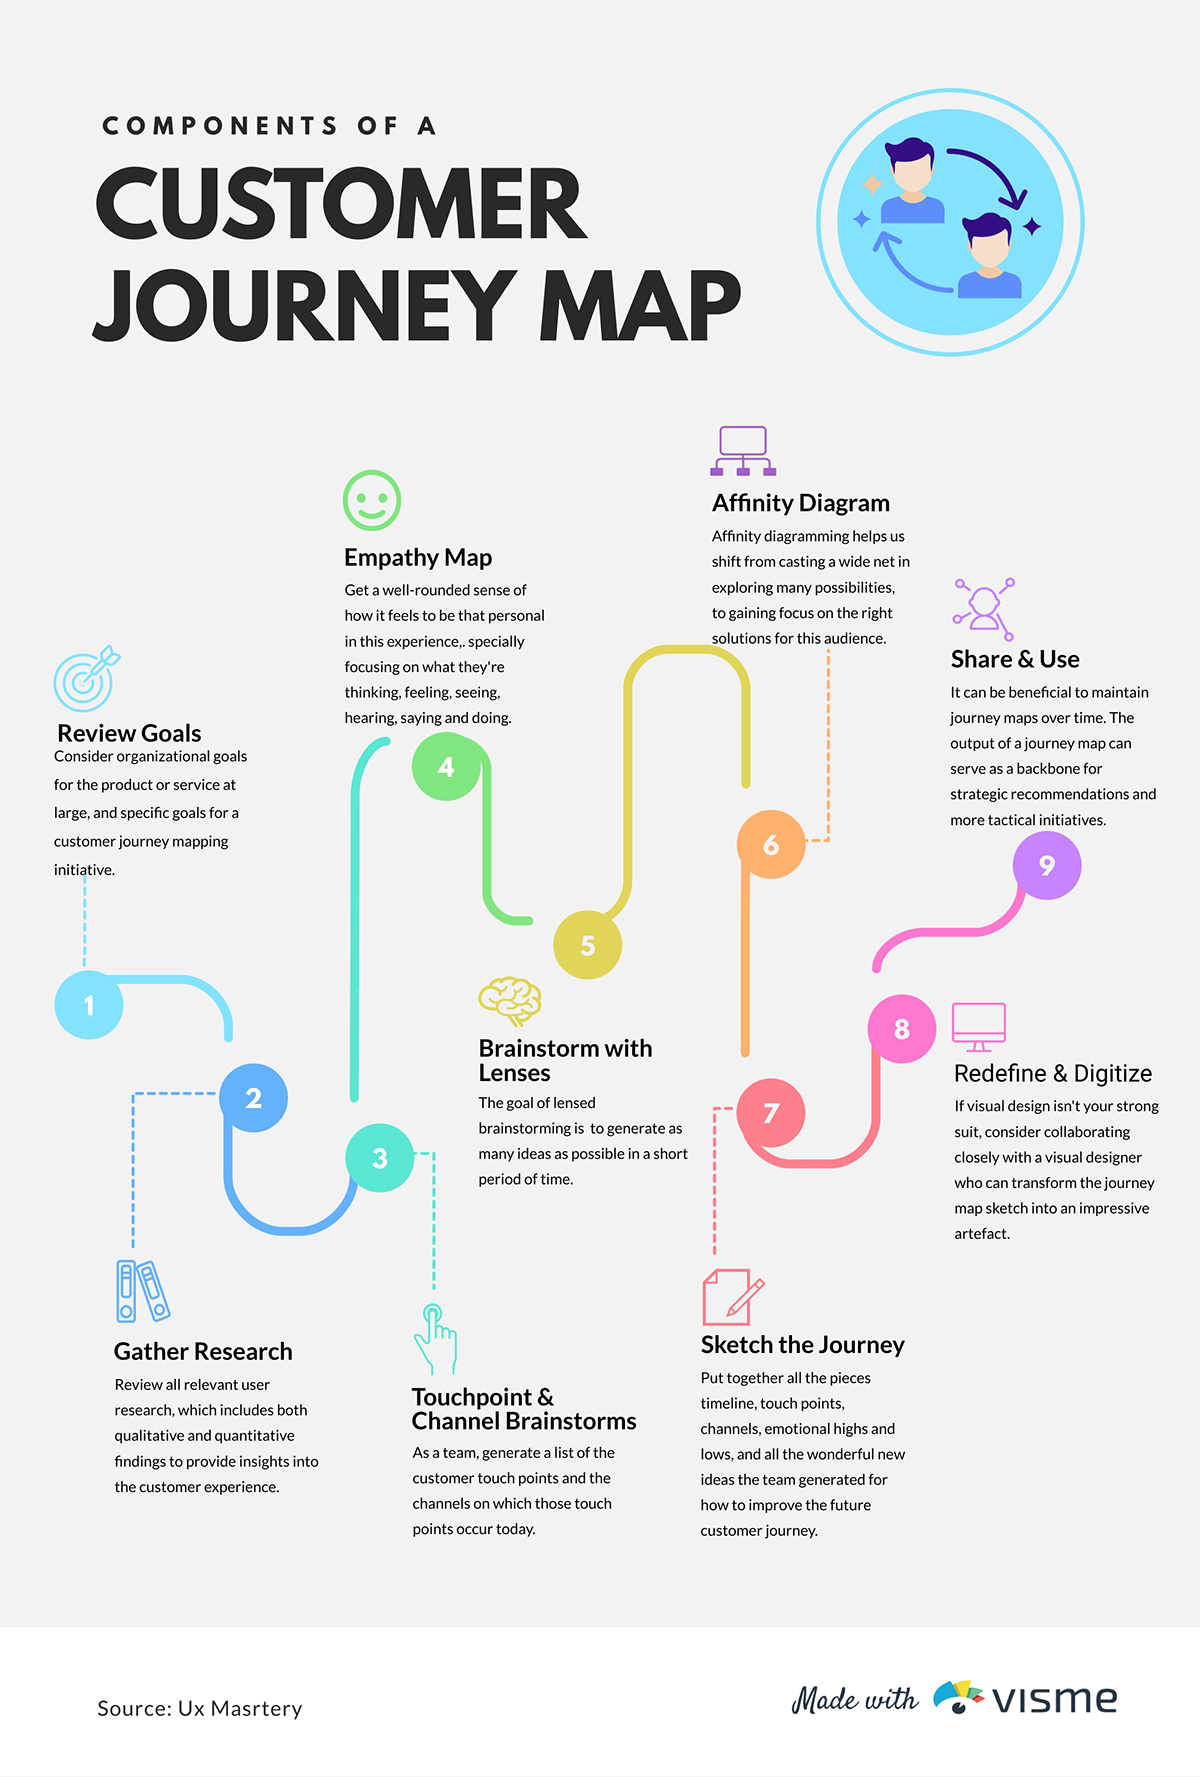 A customer journey map timeline template available to customize in Visme.